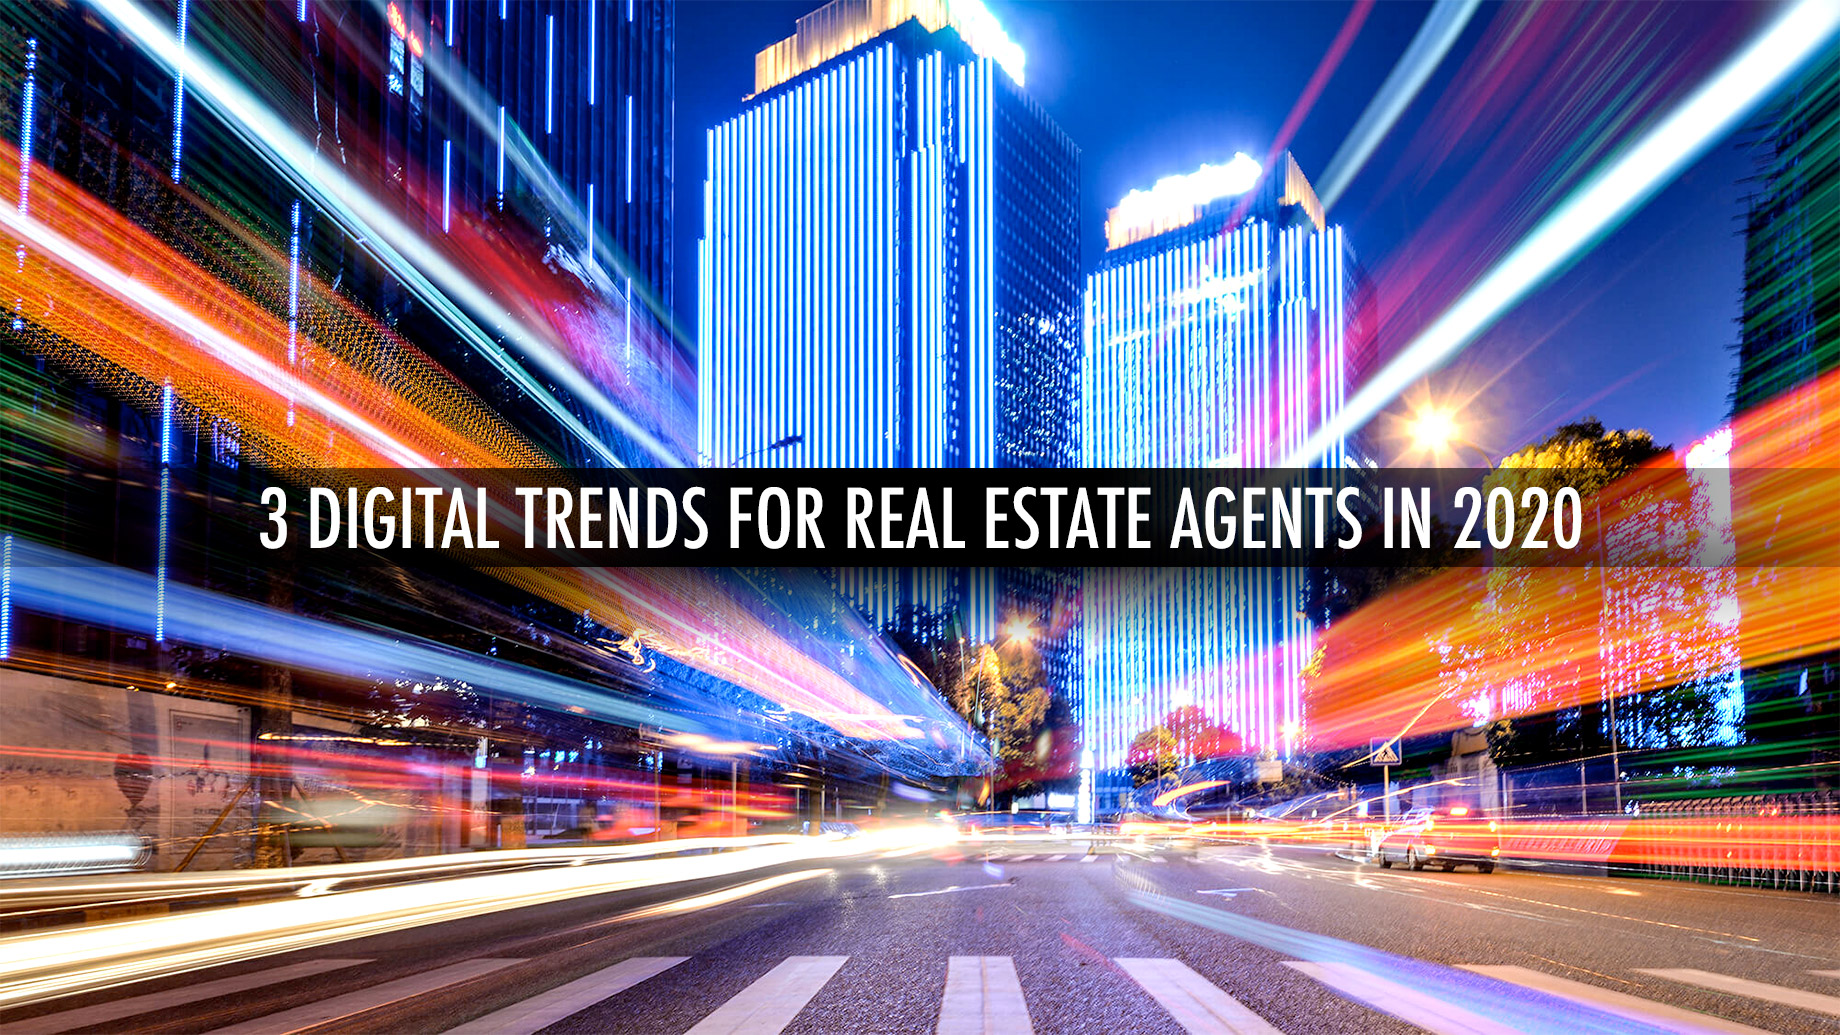 3 Digital Trends For Real Estate Agents In 2020